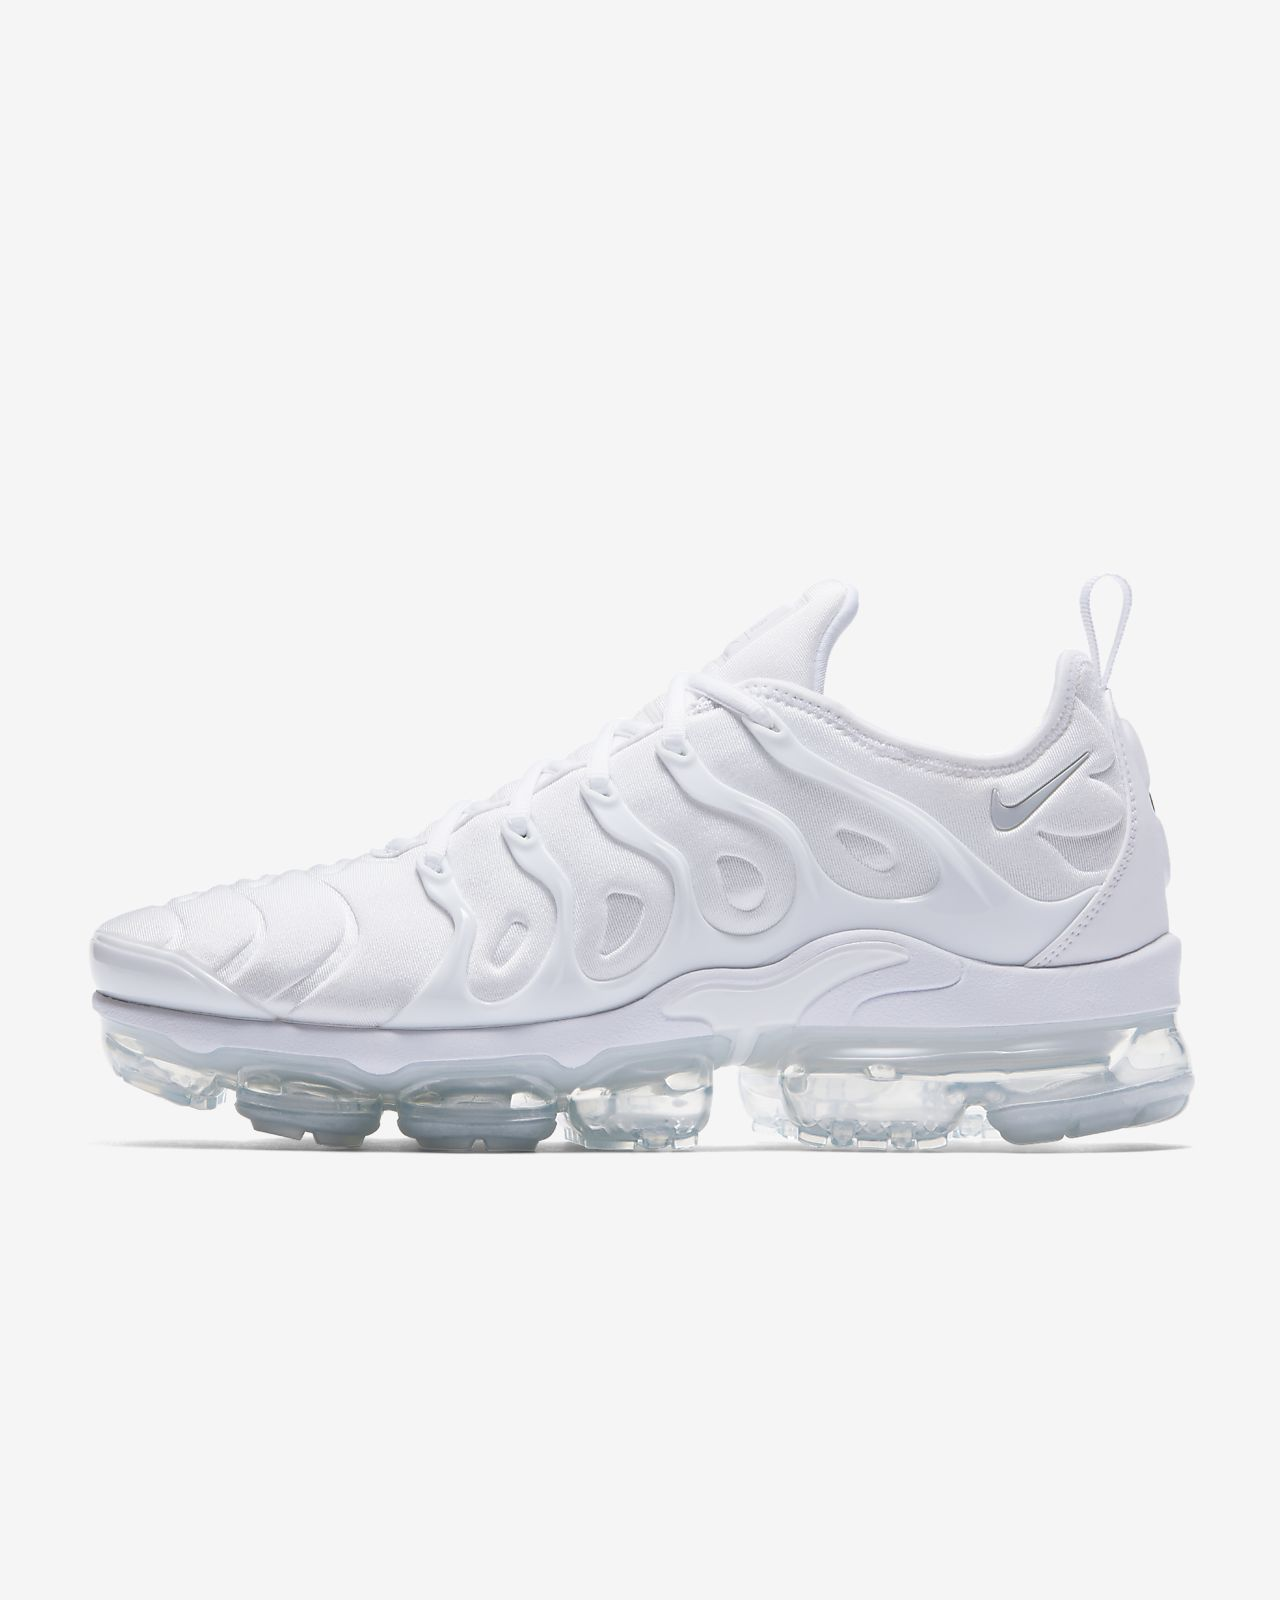 56e89f9580b10 Nike Air VaporMax Plus Men s Shoe. Nike.com DK